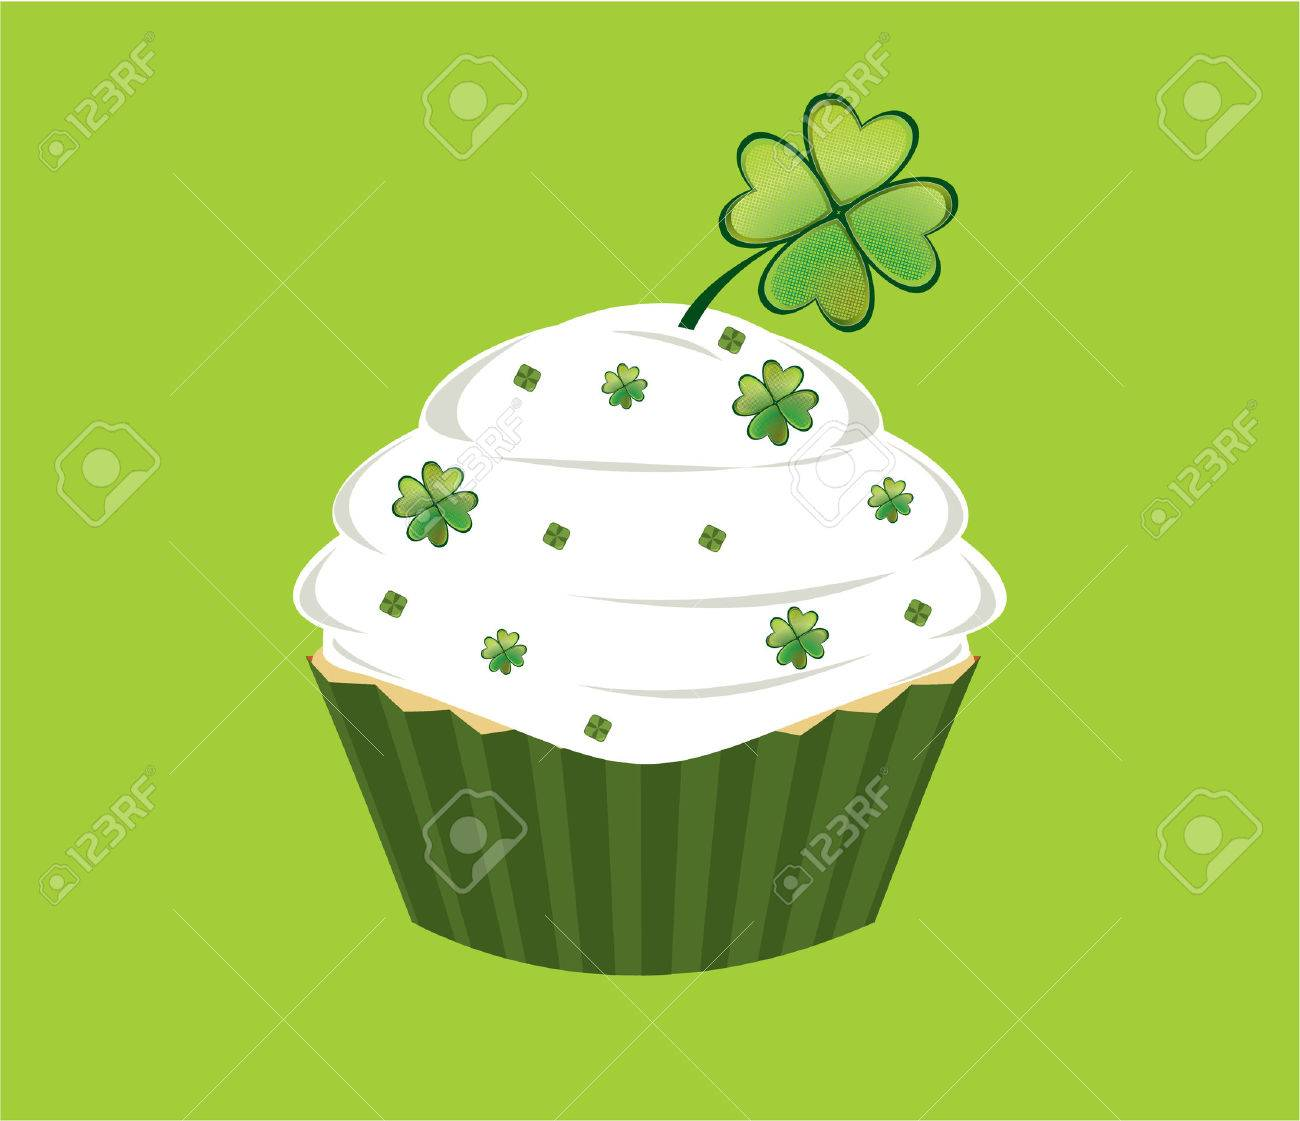 Cupcake decorated with green diamond shapes and shamrocks on white frosted in front of a white background - 6468320